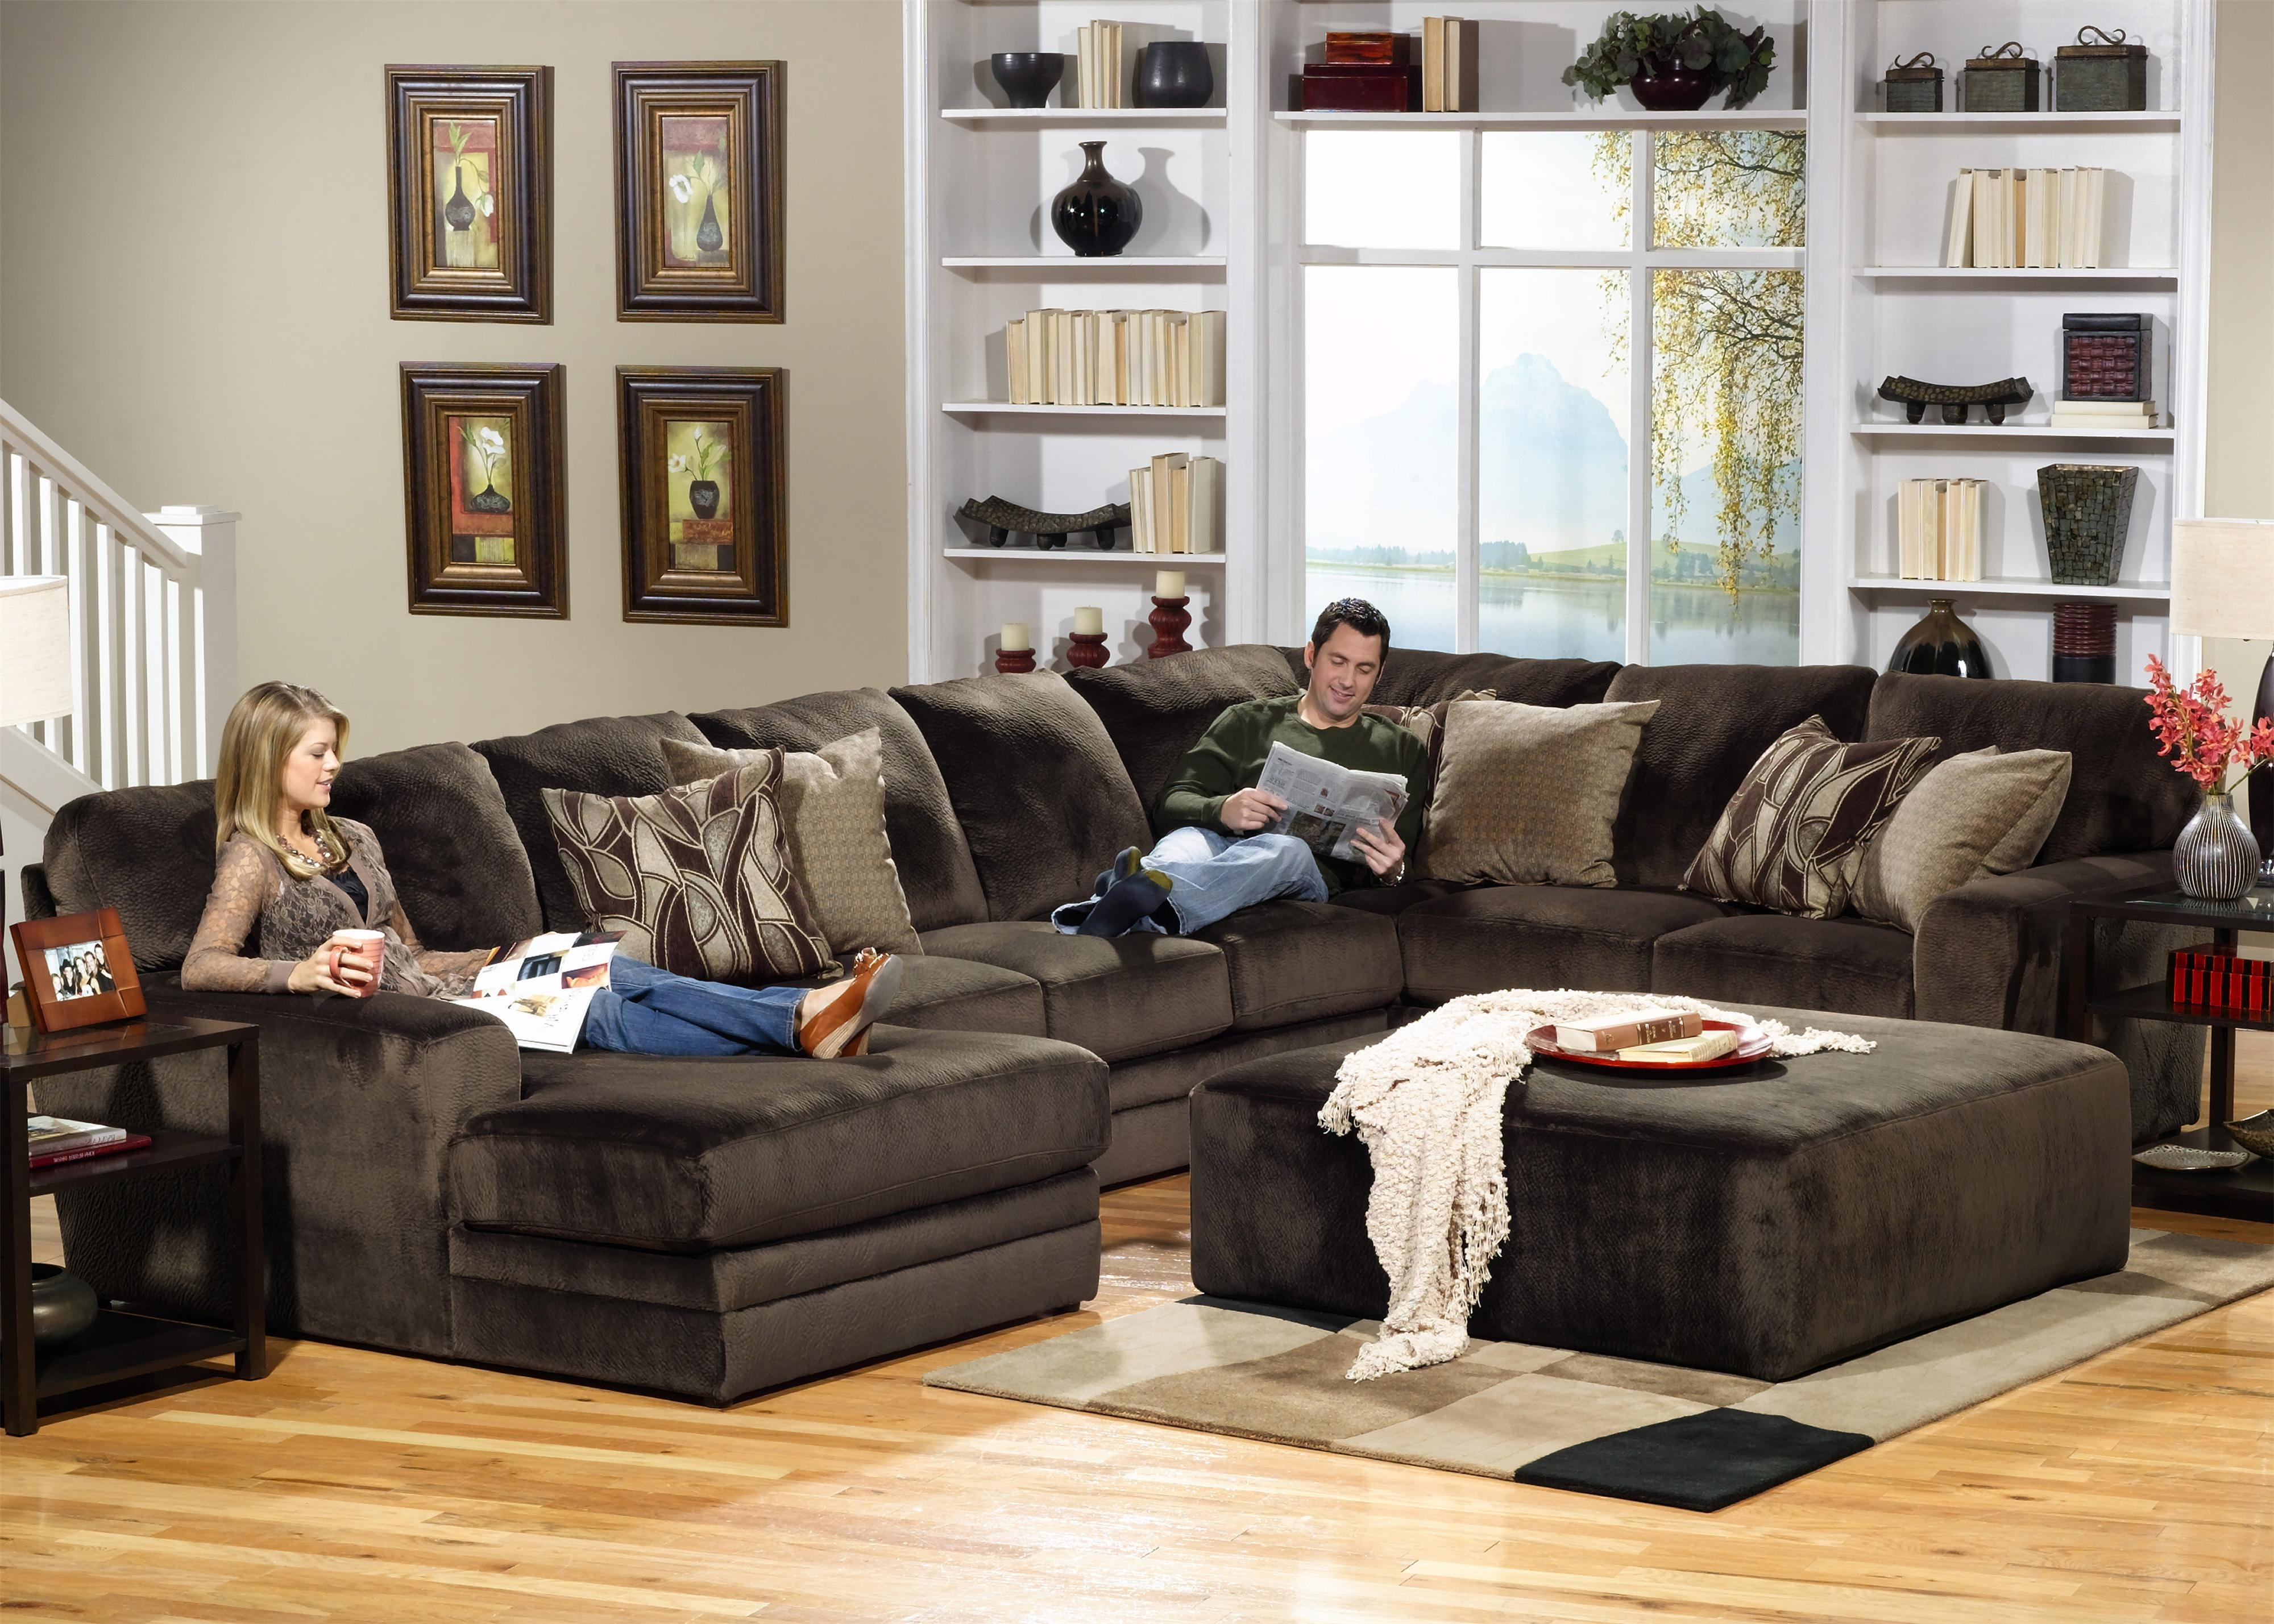 Daine 3Pc Sectional Sofa - Sofa Design Ideas pertaining to Malbry Point 3 Piece Sectionals With Laf Chaise (Image 10 of 30)